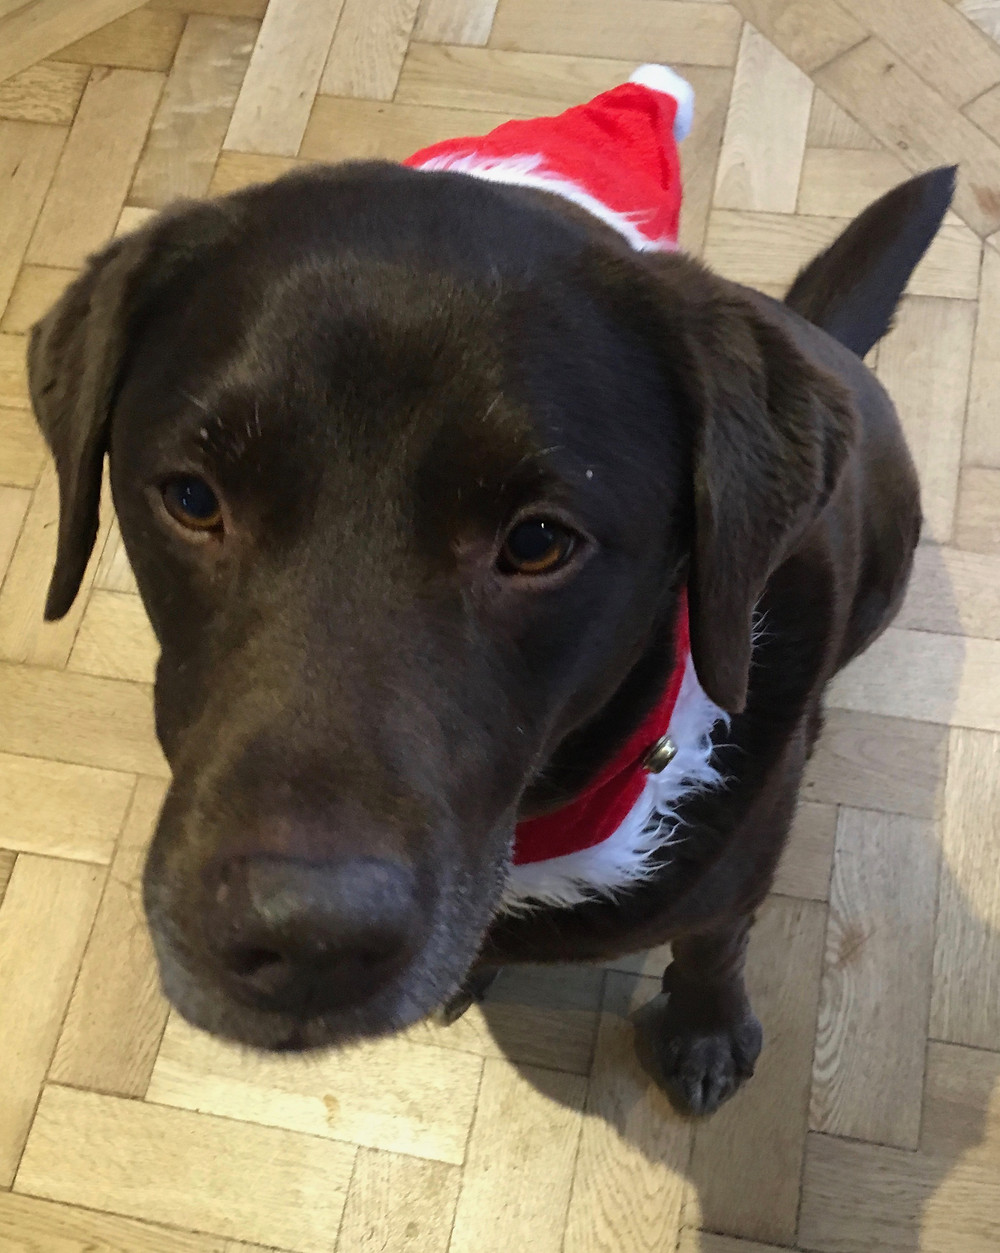 Monty the office dog is unimpressed with his Christmas outfit